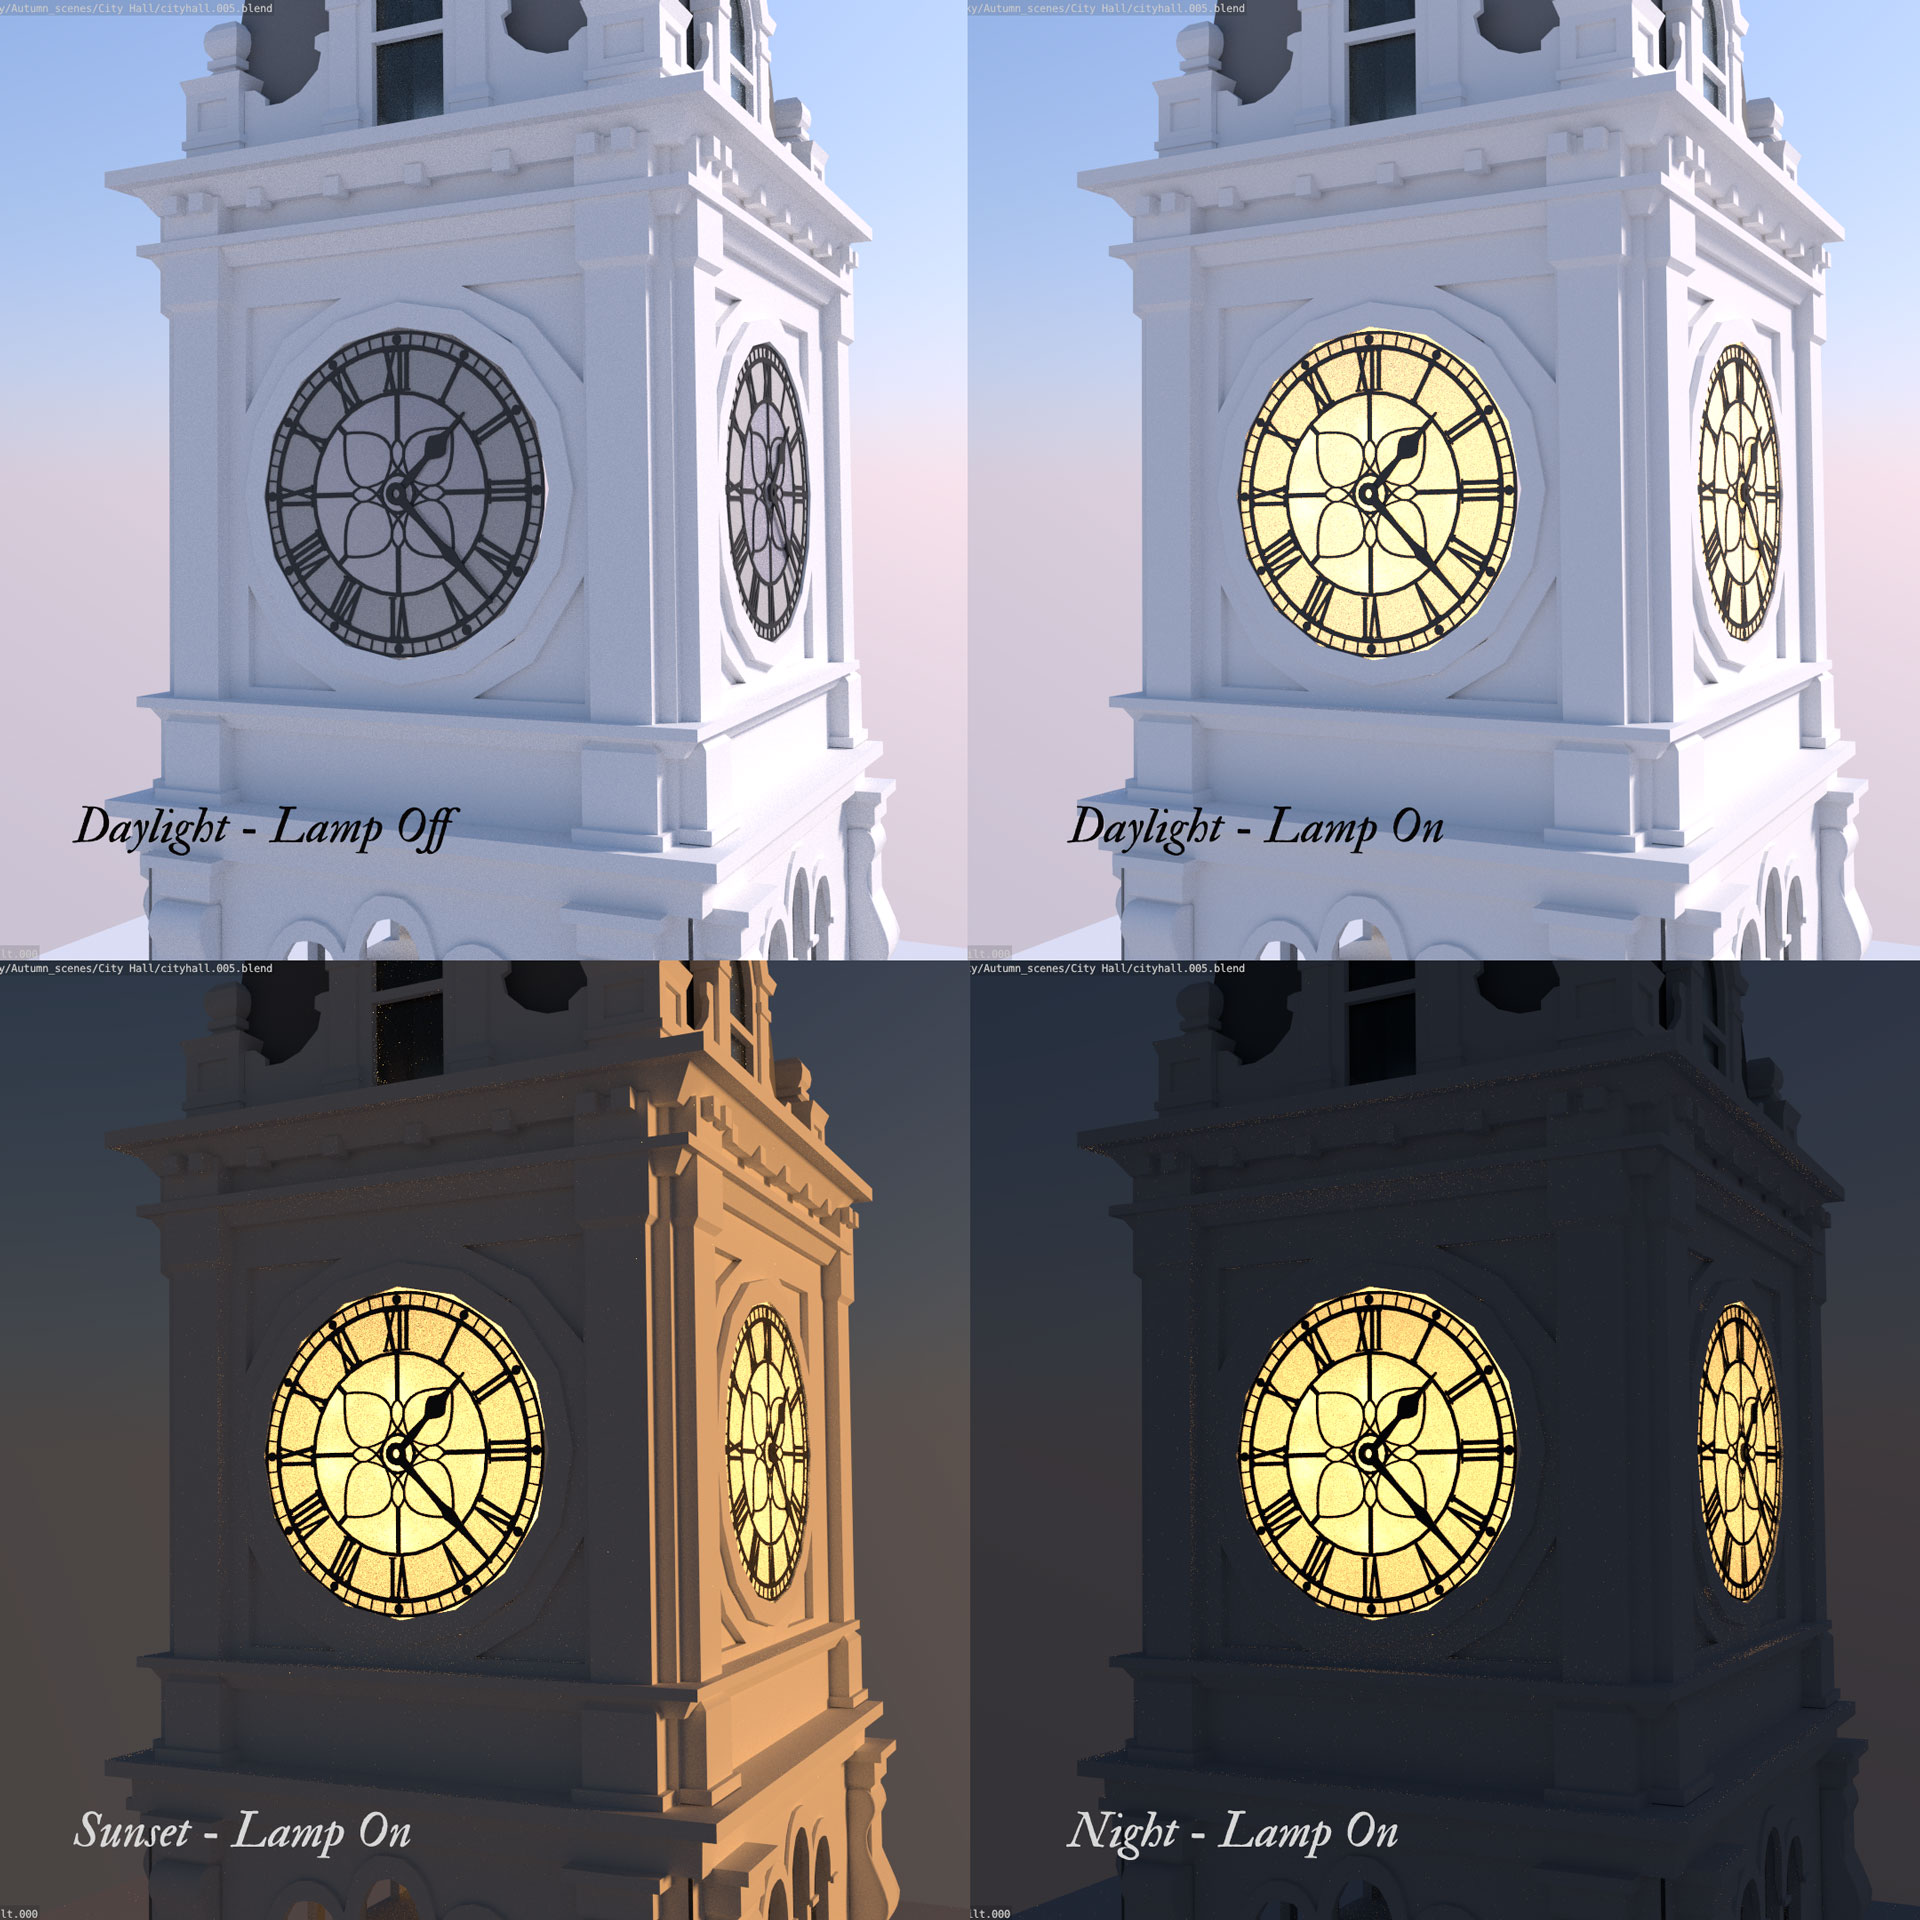 city hall clock tower